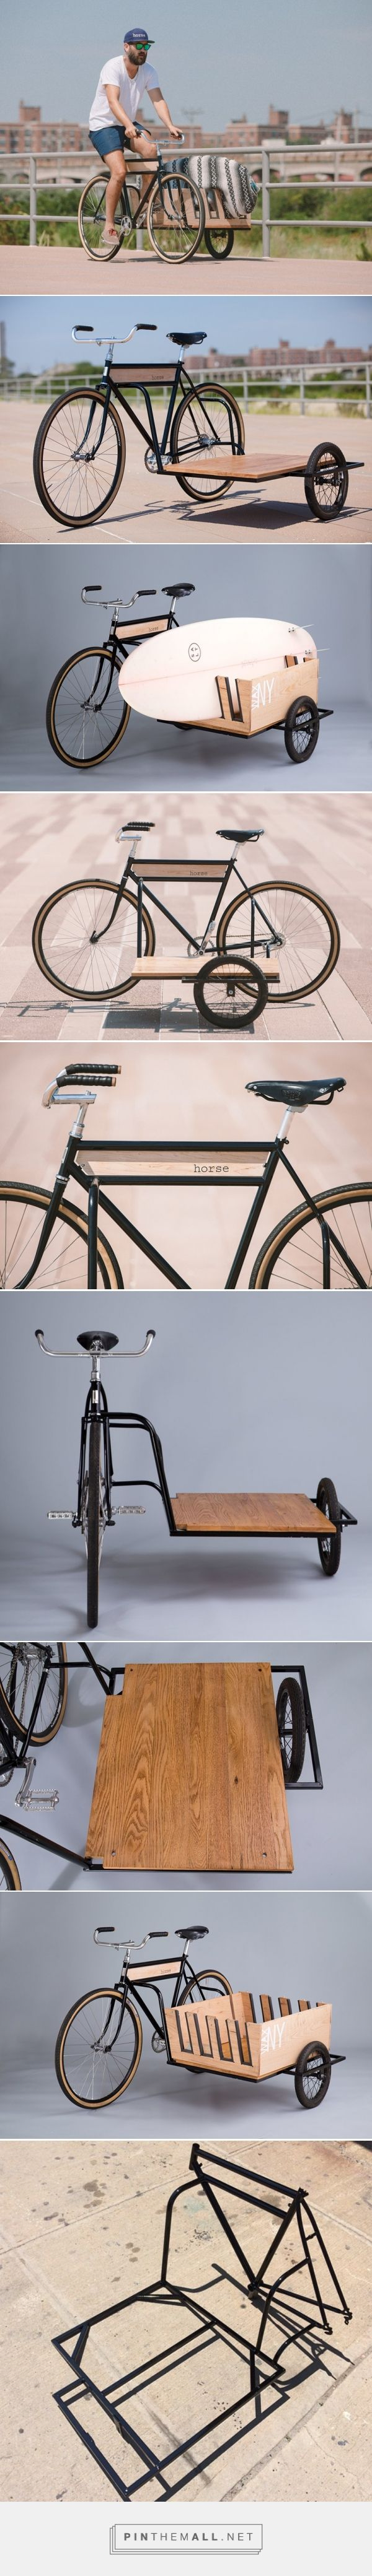 haul large packages and surfboards with the horse sidecar bicycle - created via http://pinthemall.net